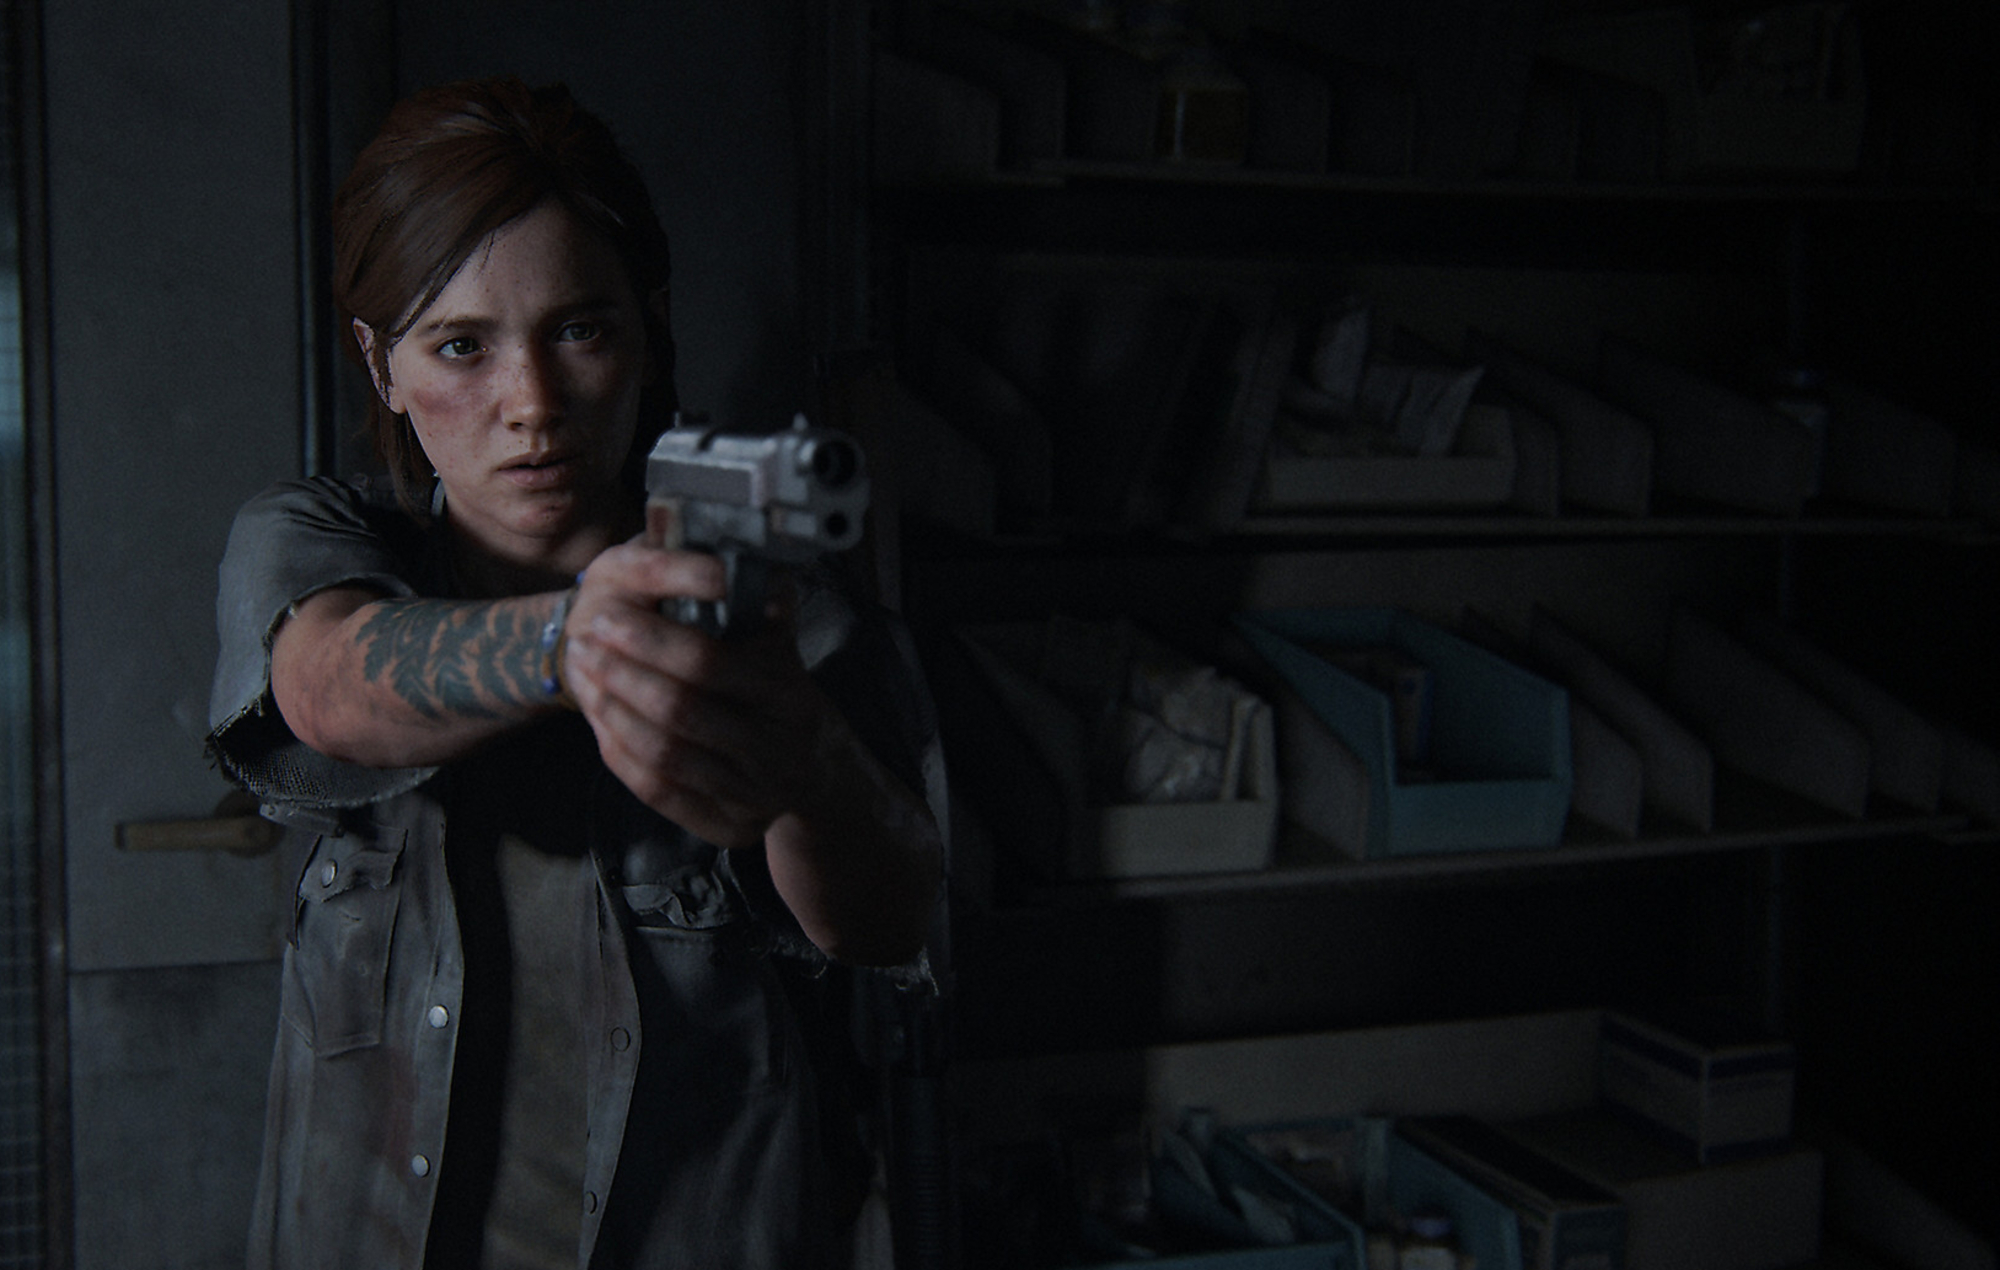 Ellie in The Last Of Us Part II